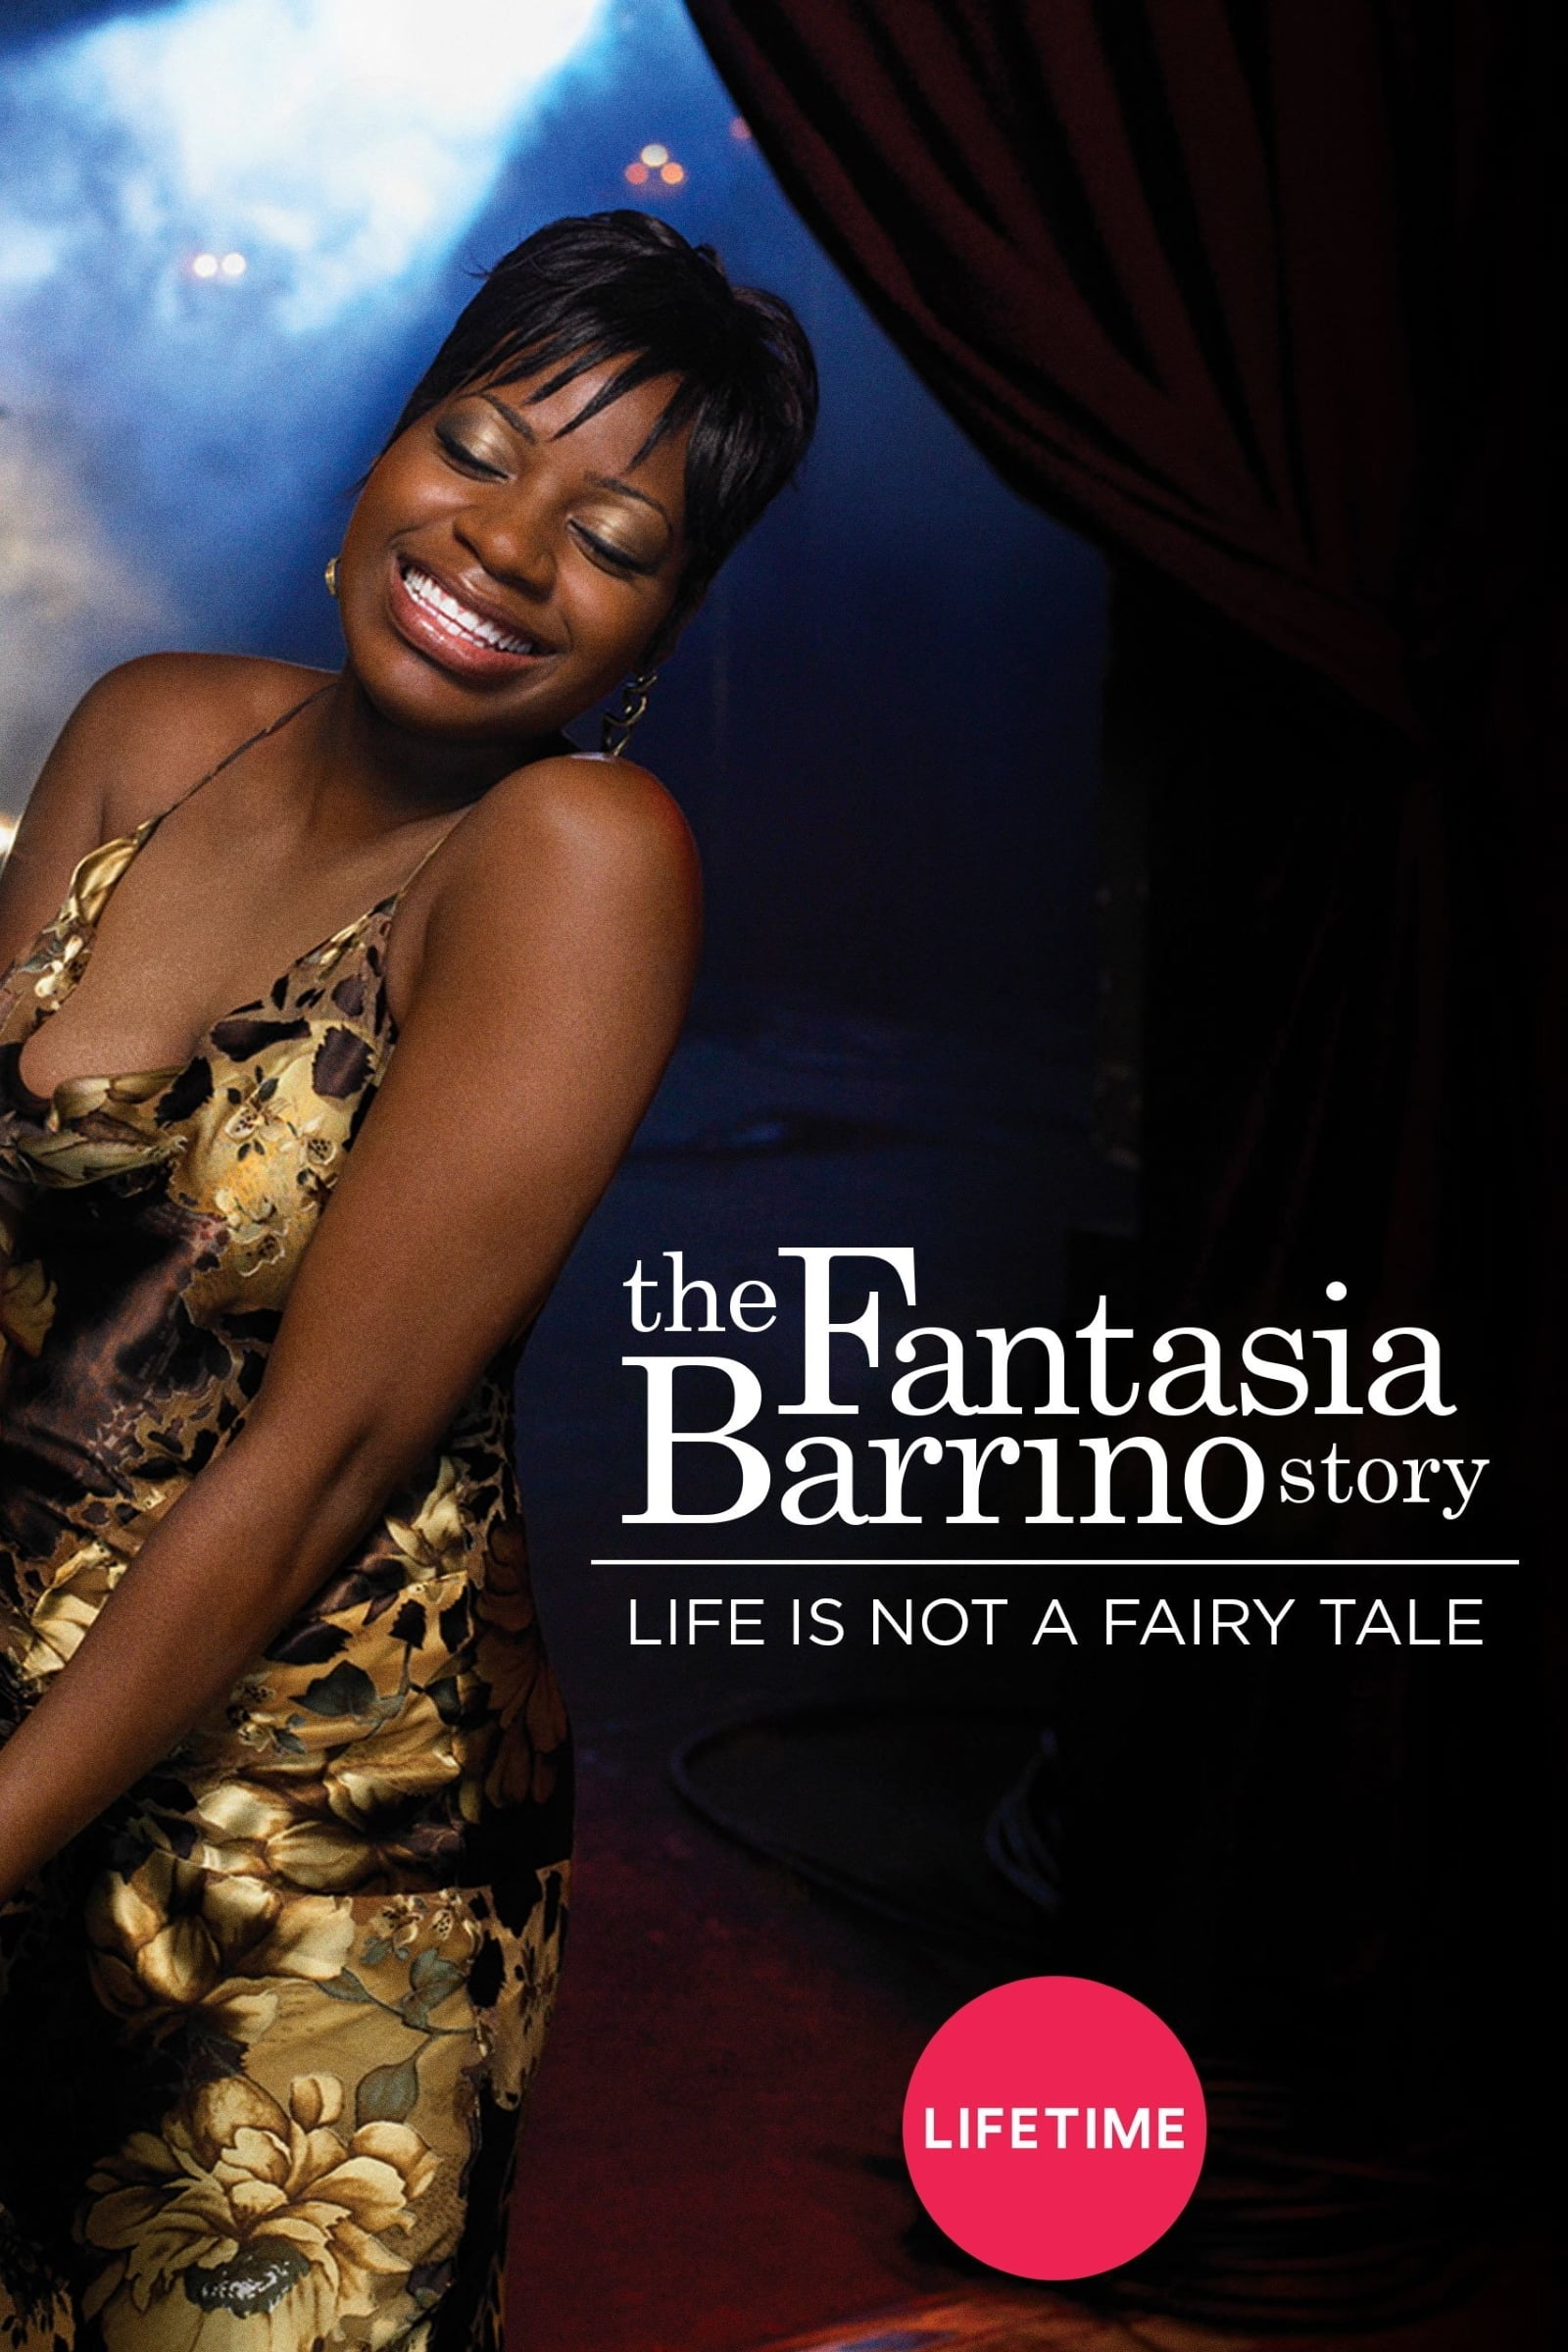 Life Is Not a Fairytale: The Fantasia Barrino Story (2006)